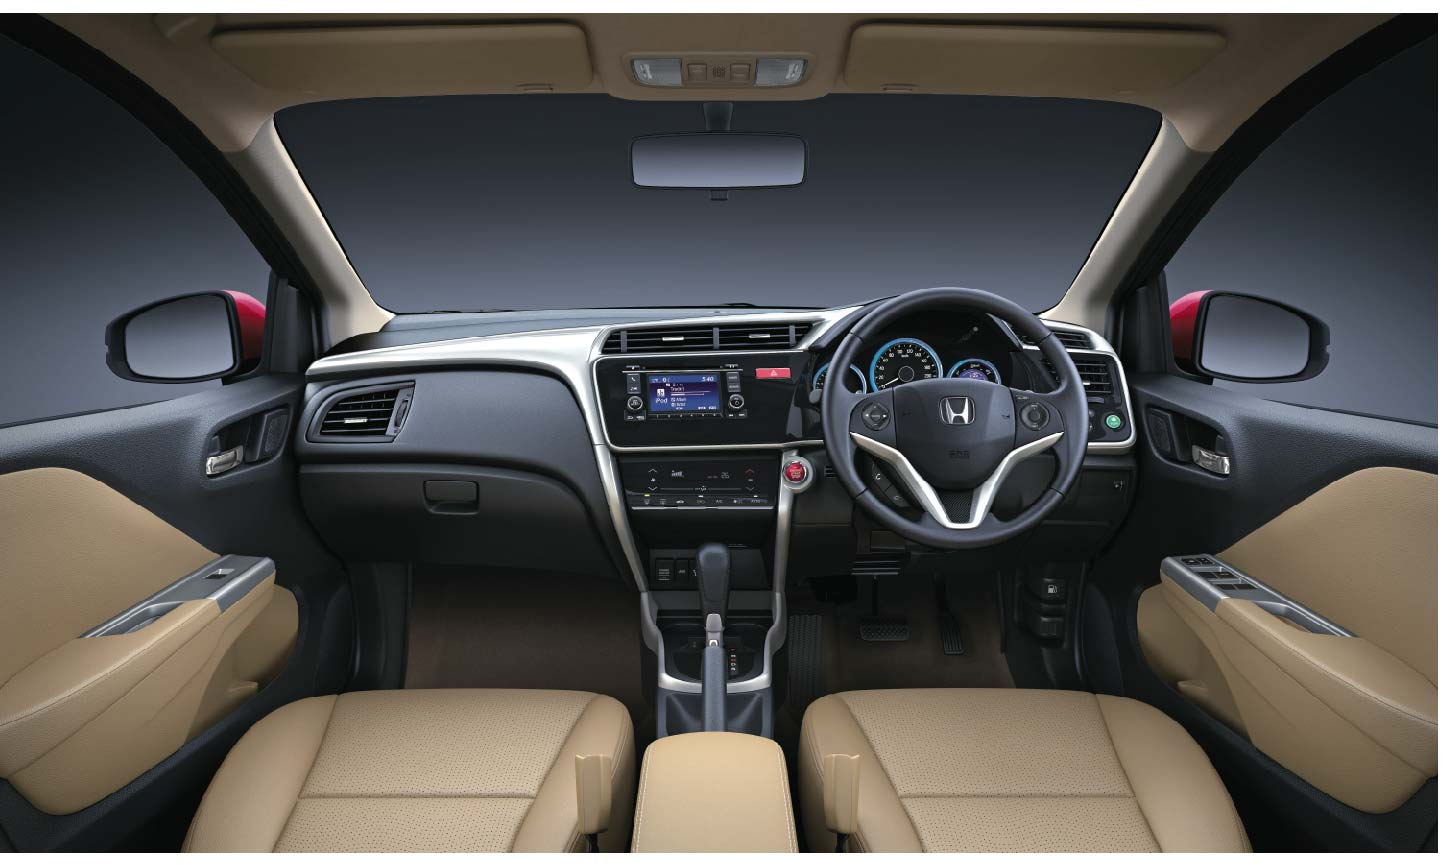 new 2014 honda city dashboard january 7 2014 by admin